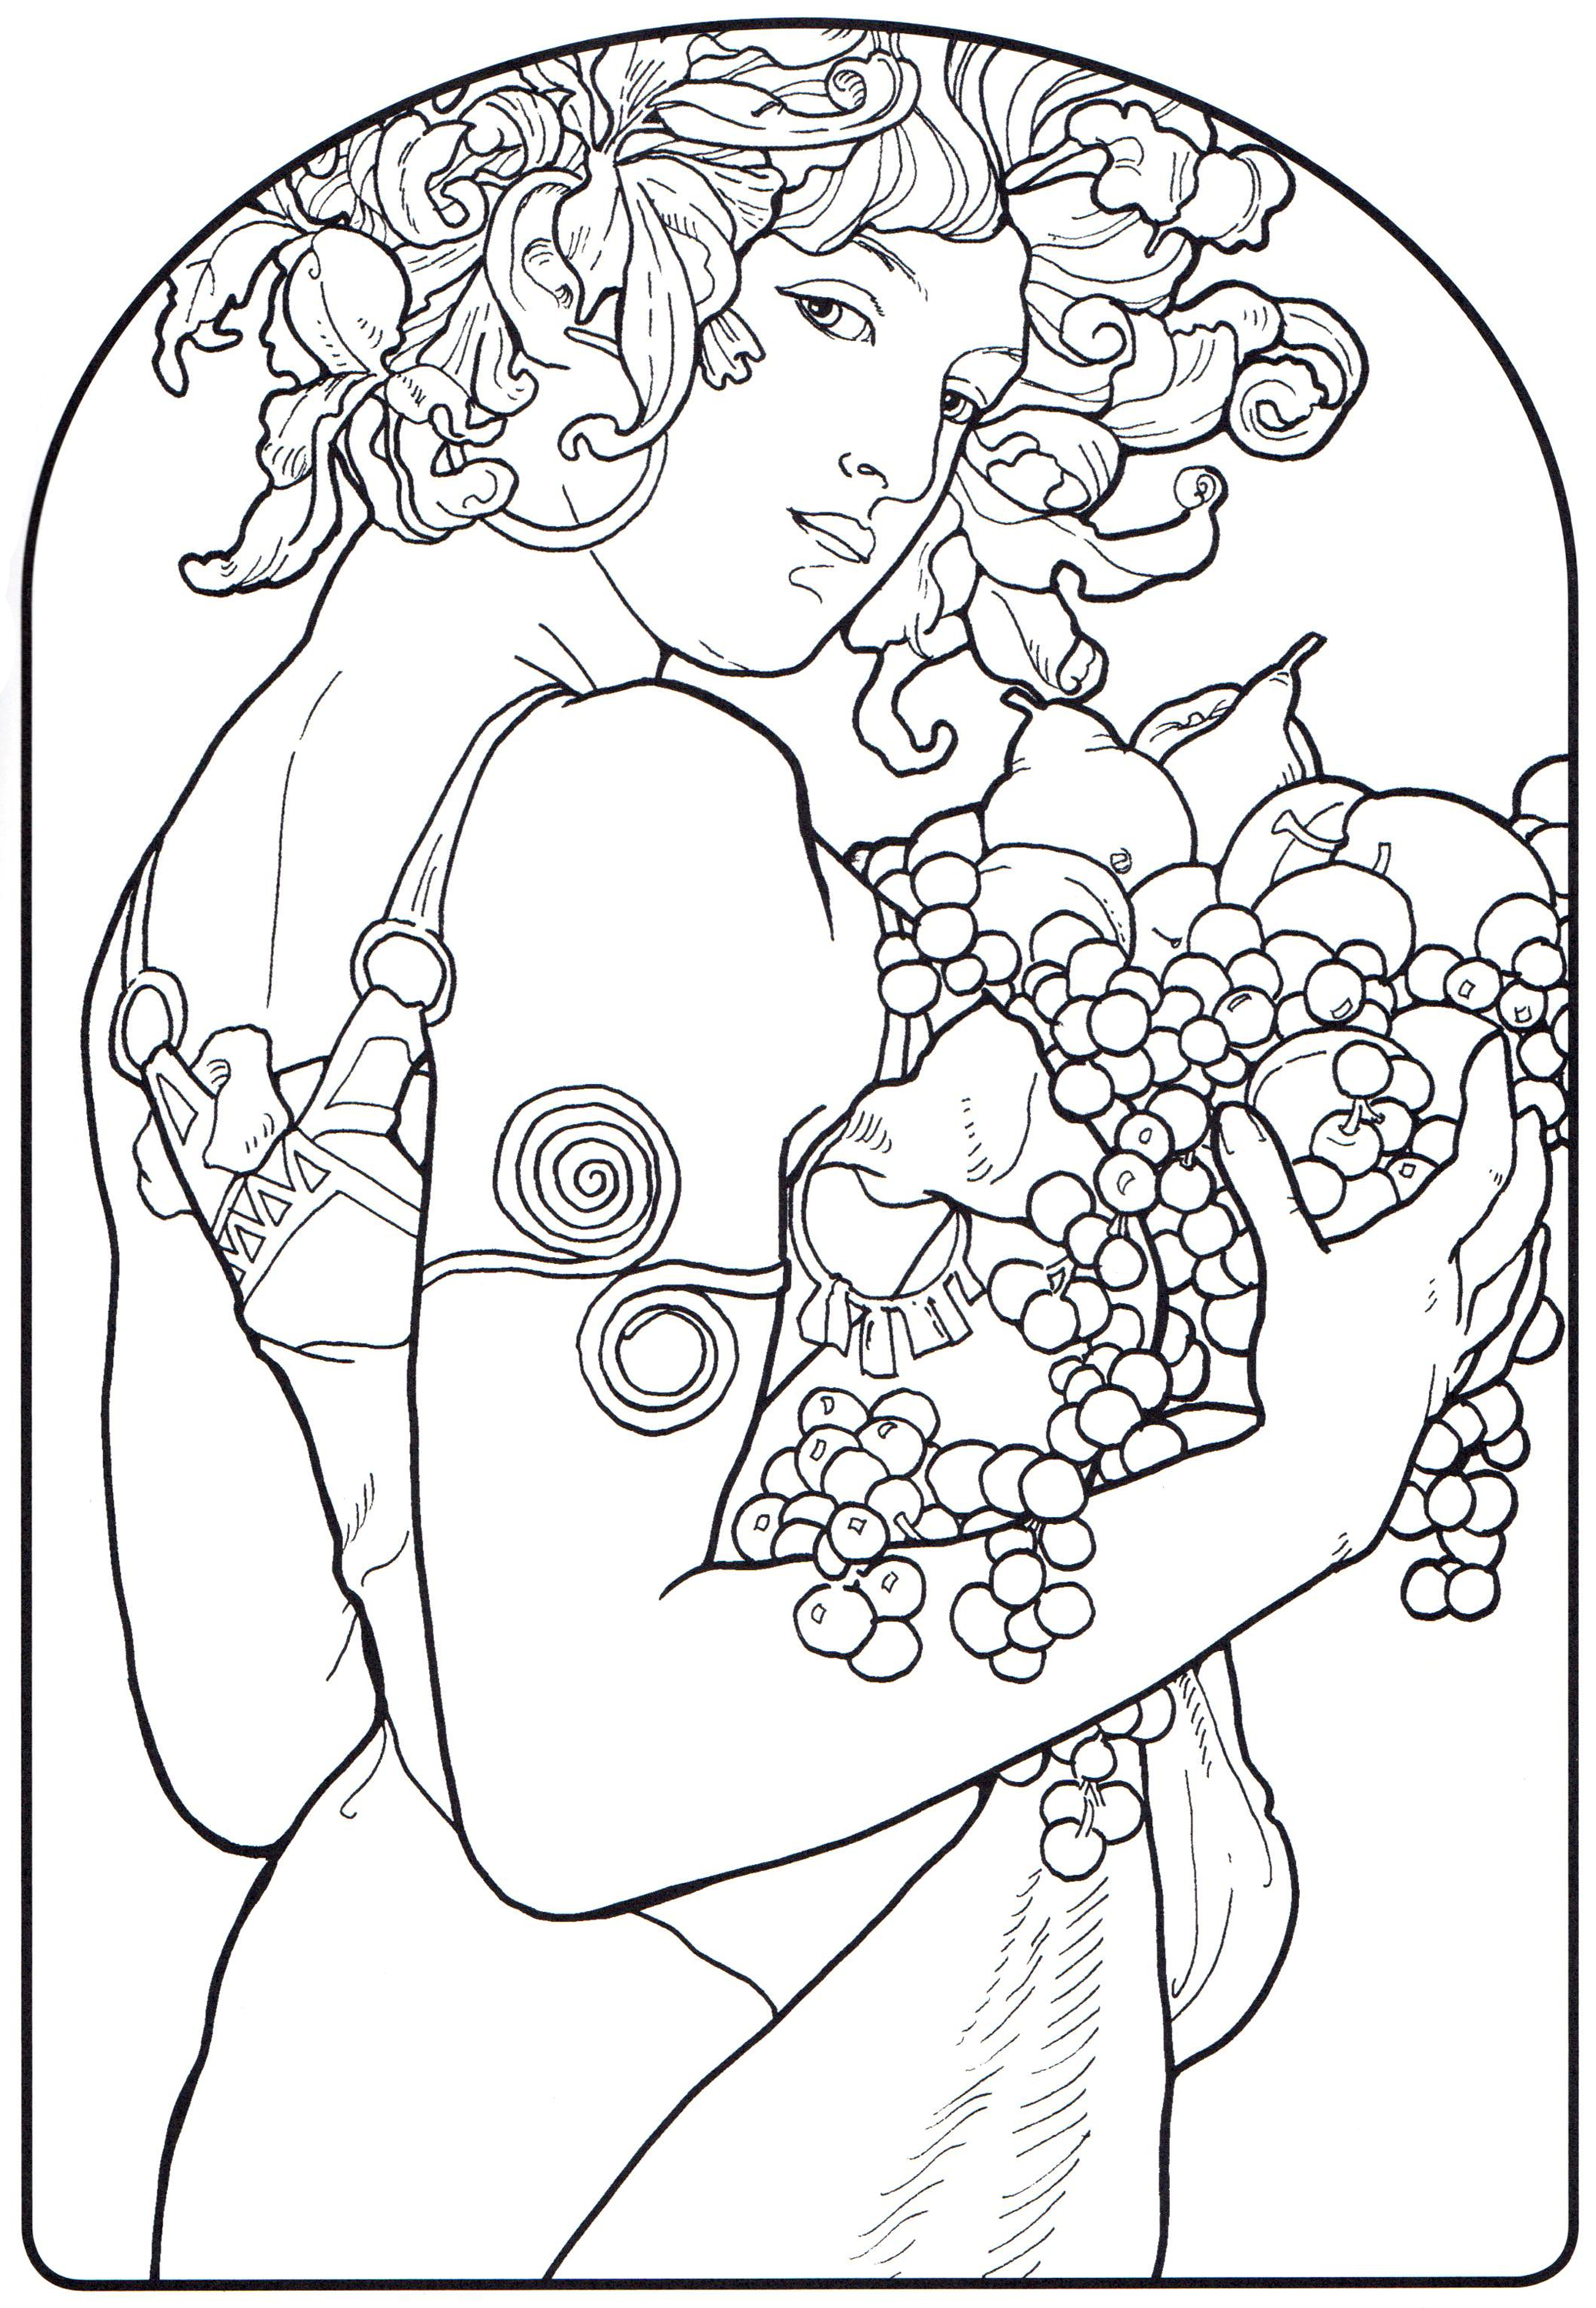 Pomegranate Coloring Page